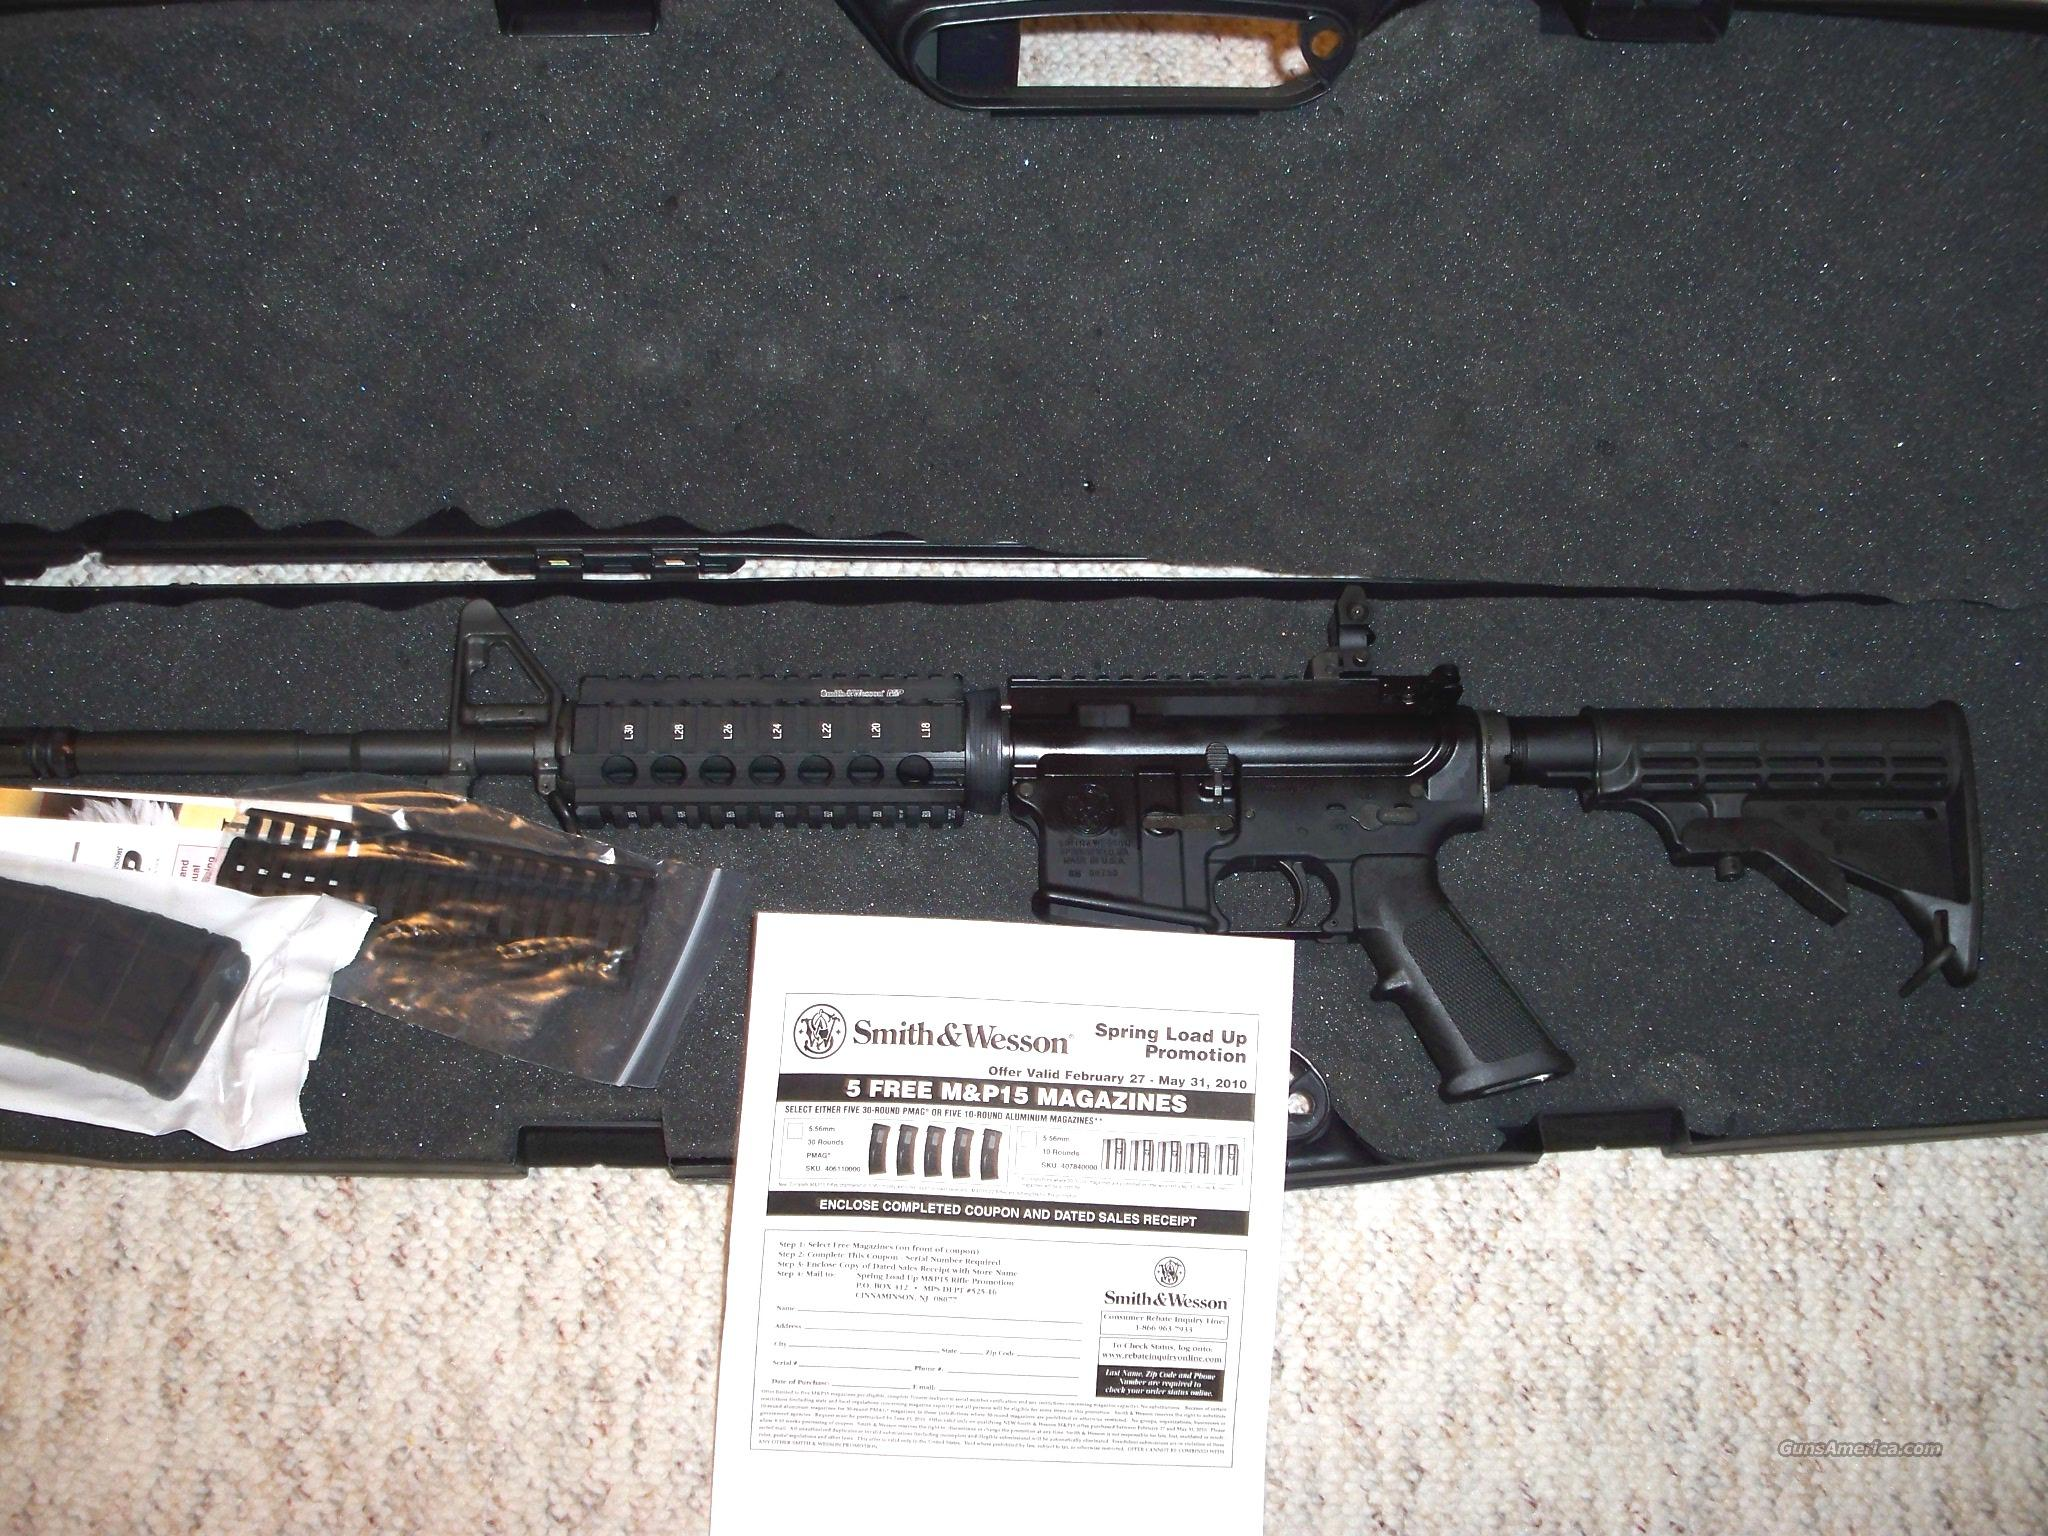 S&W M&P 15X .556 NATO 16 INCH TACTICAL 5 FREE MAG  Guns > Rifles > Smith & Wesson Rifles > M&P